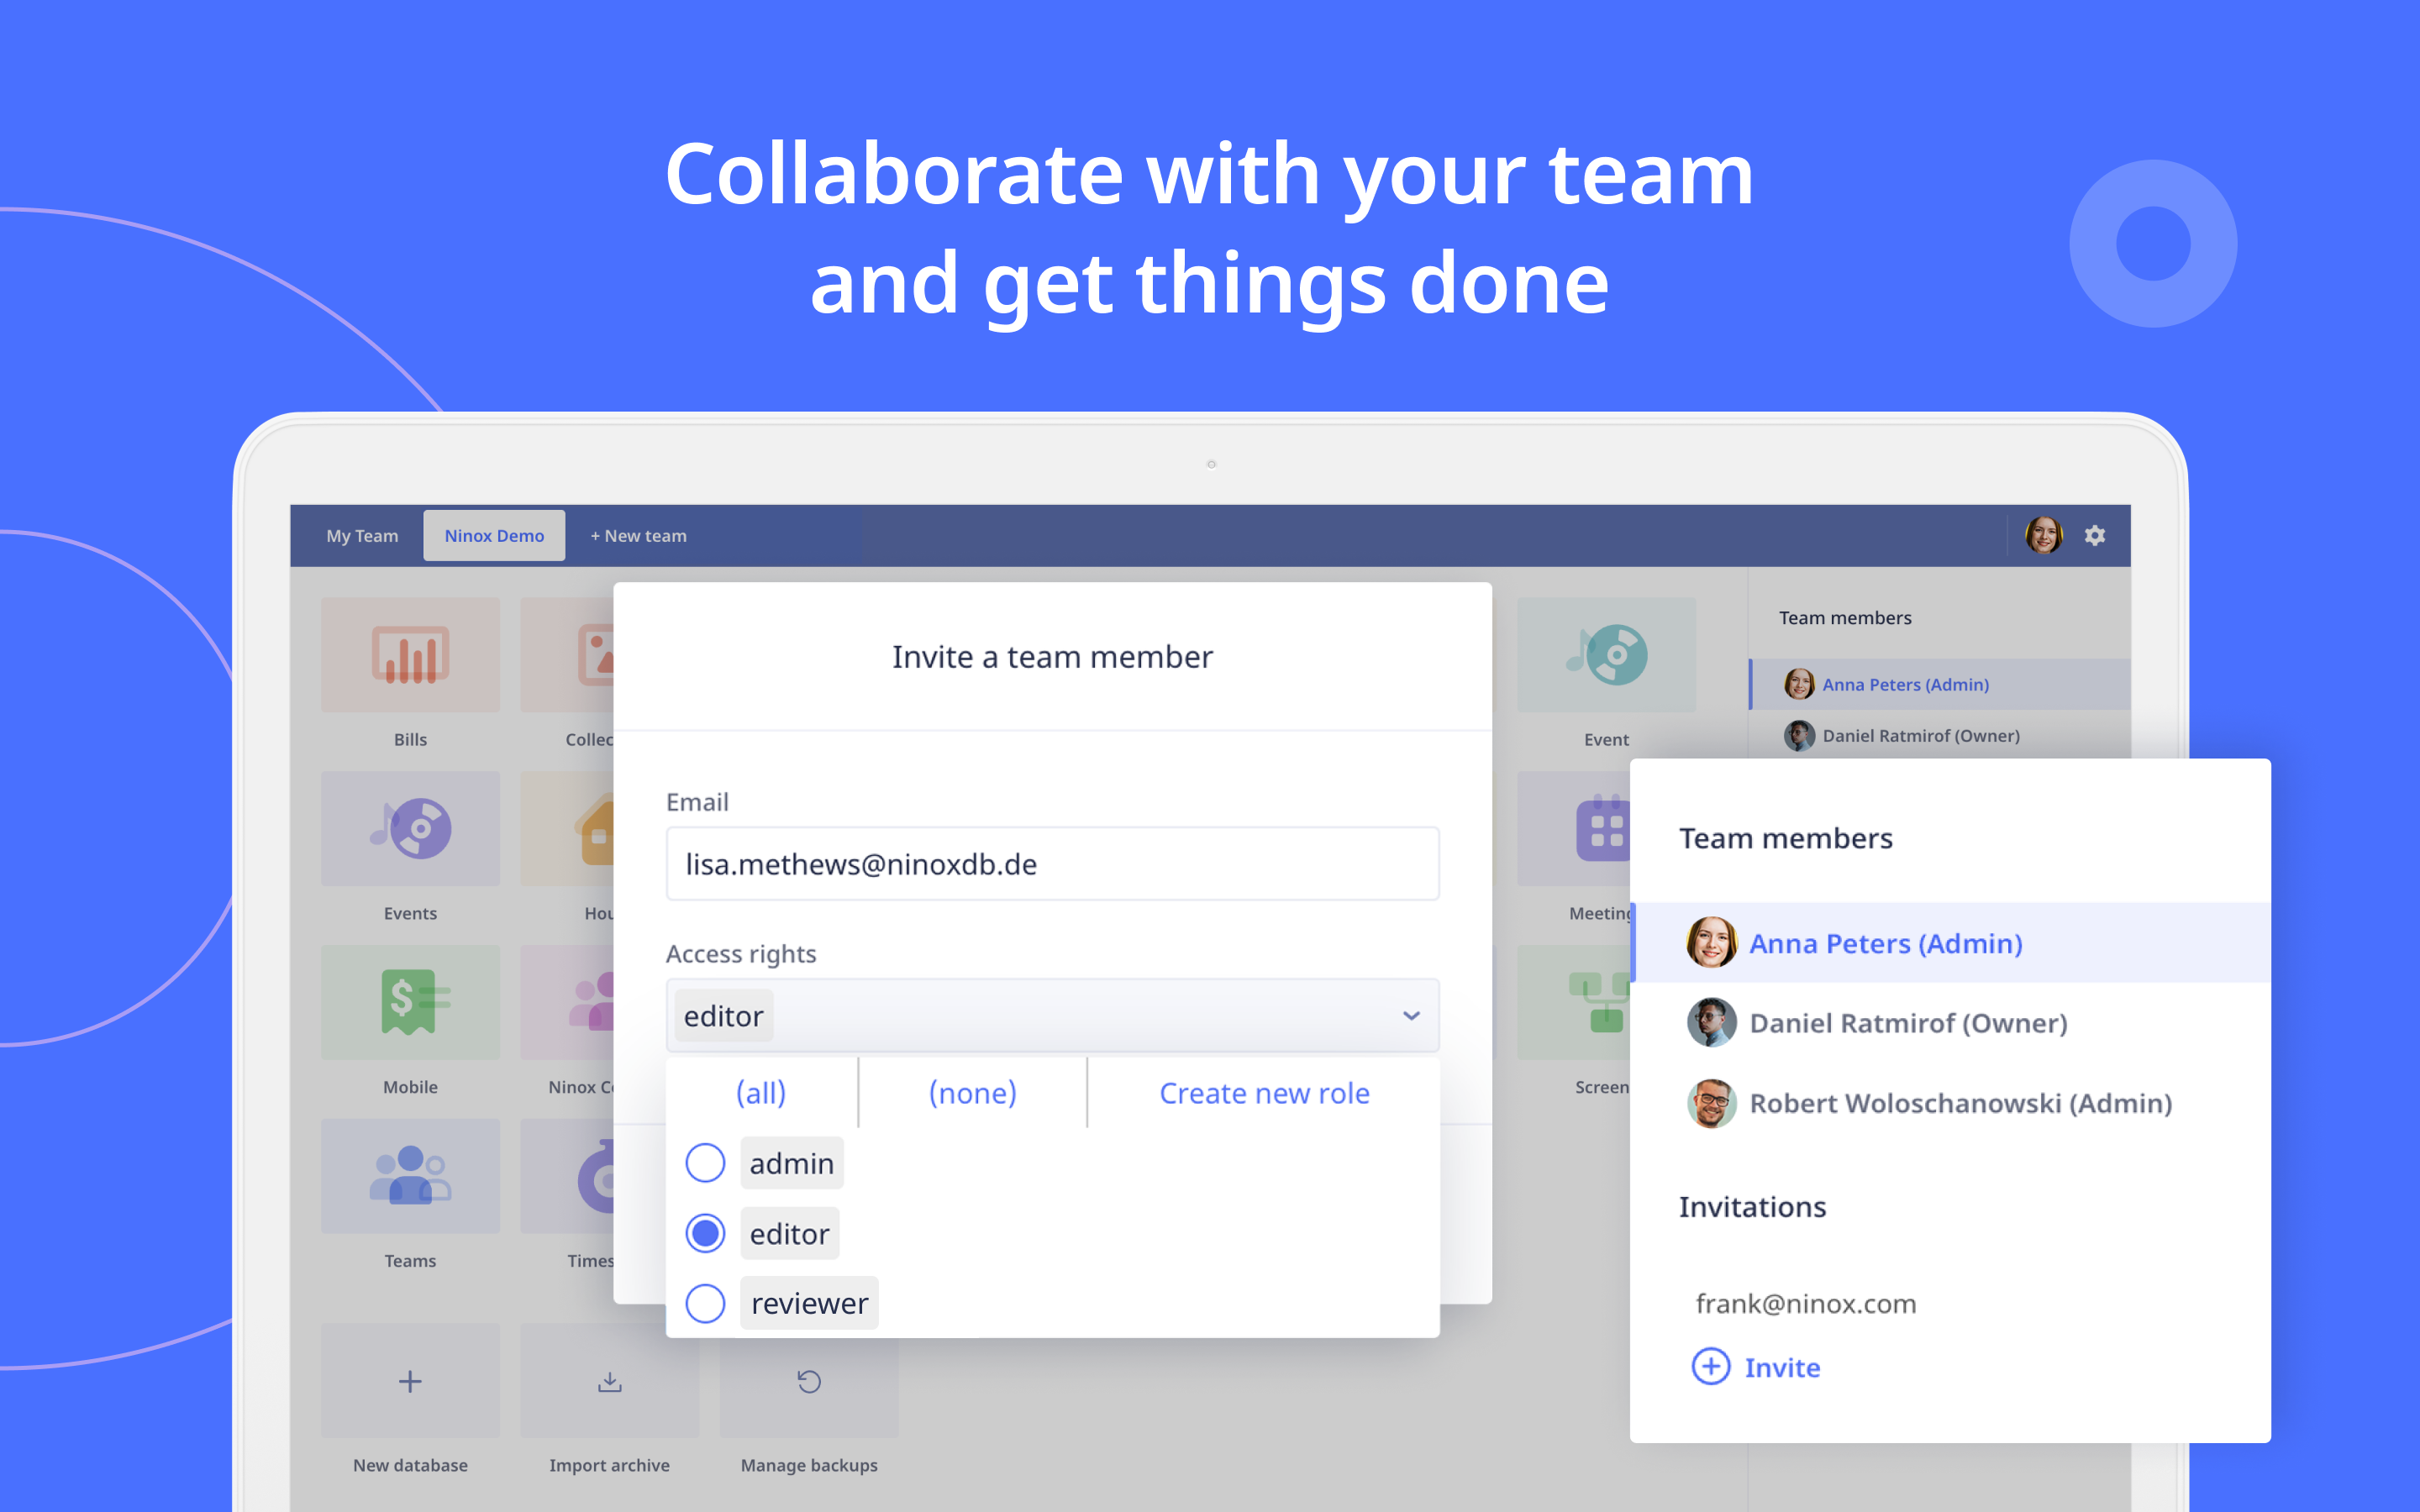 Team members can access Ninox across all platforms based on different roles.